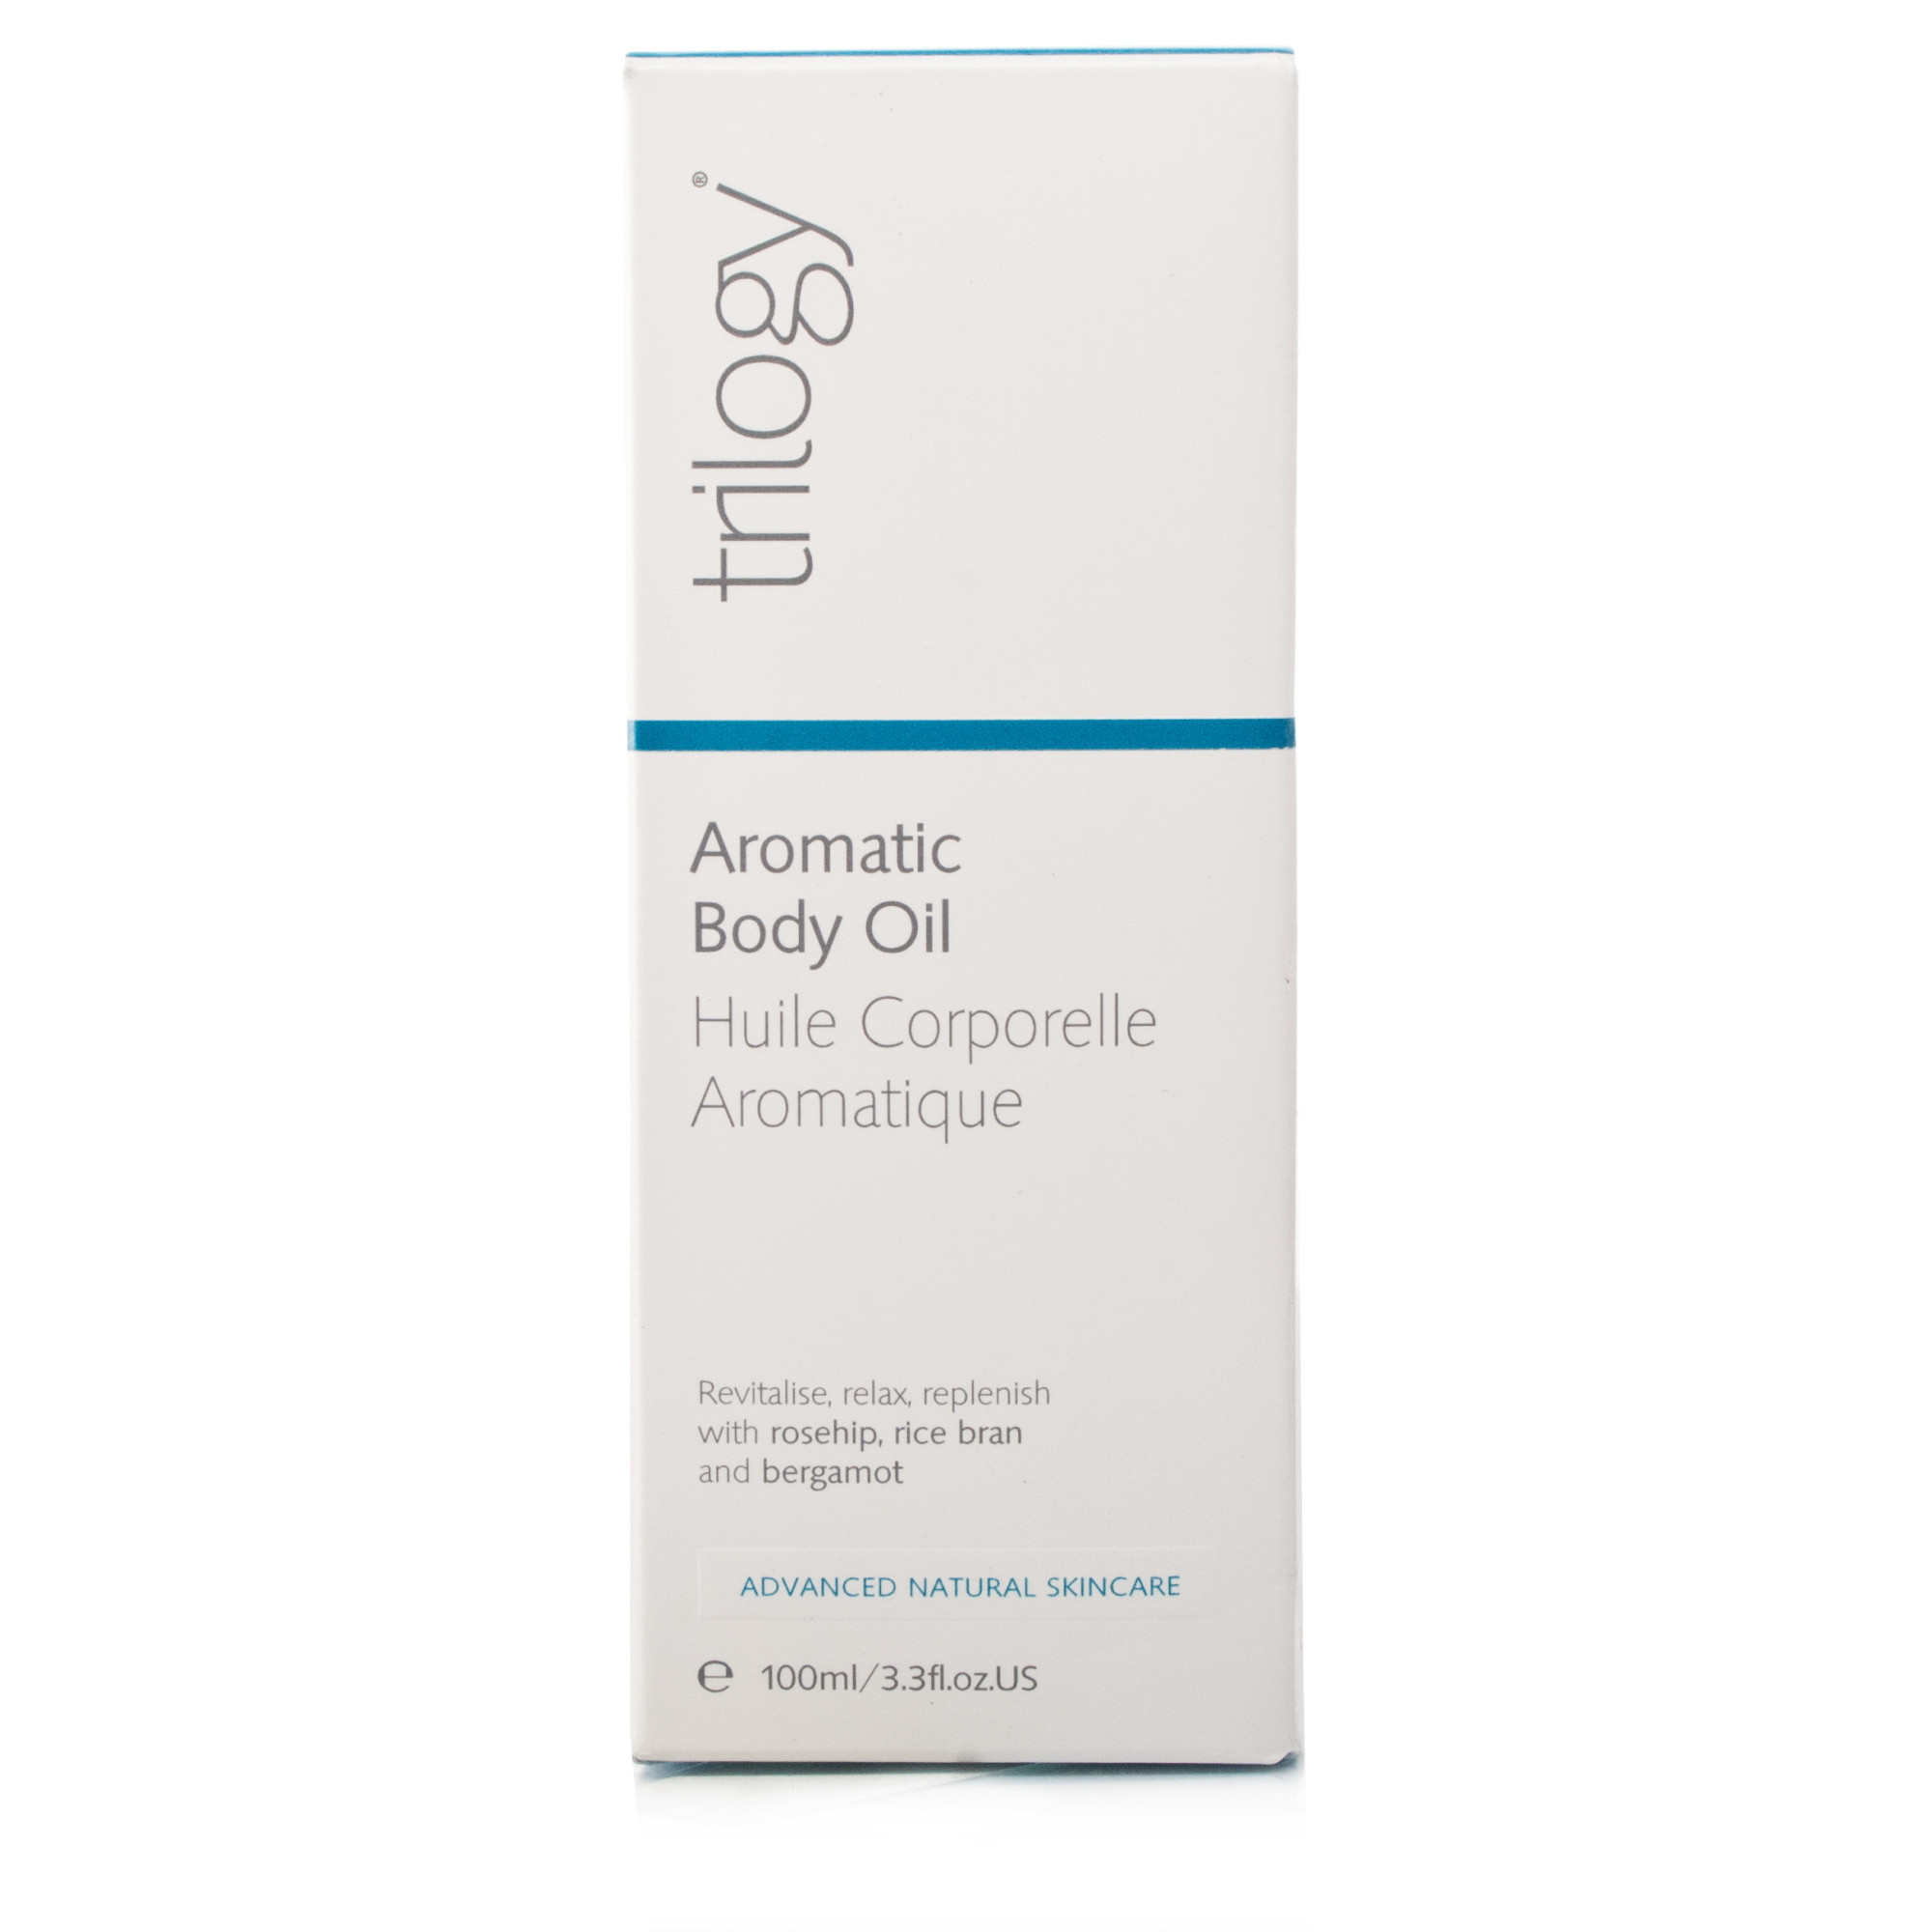 Trilogy Aromatic Body Oil 100ml